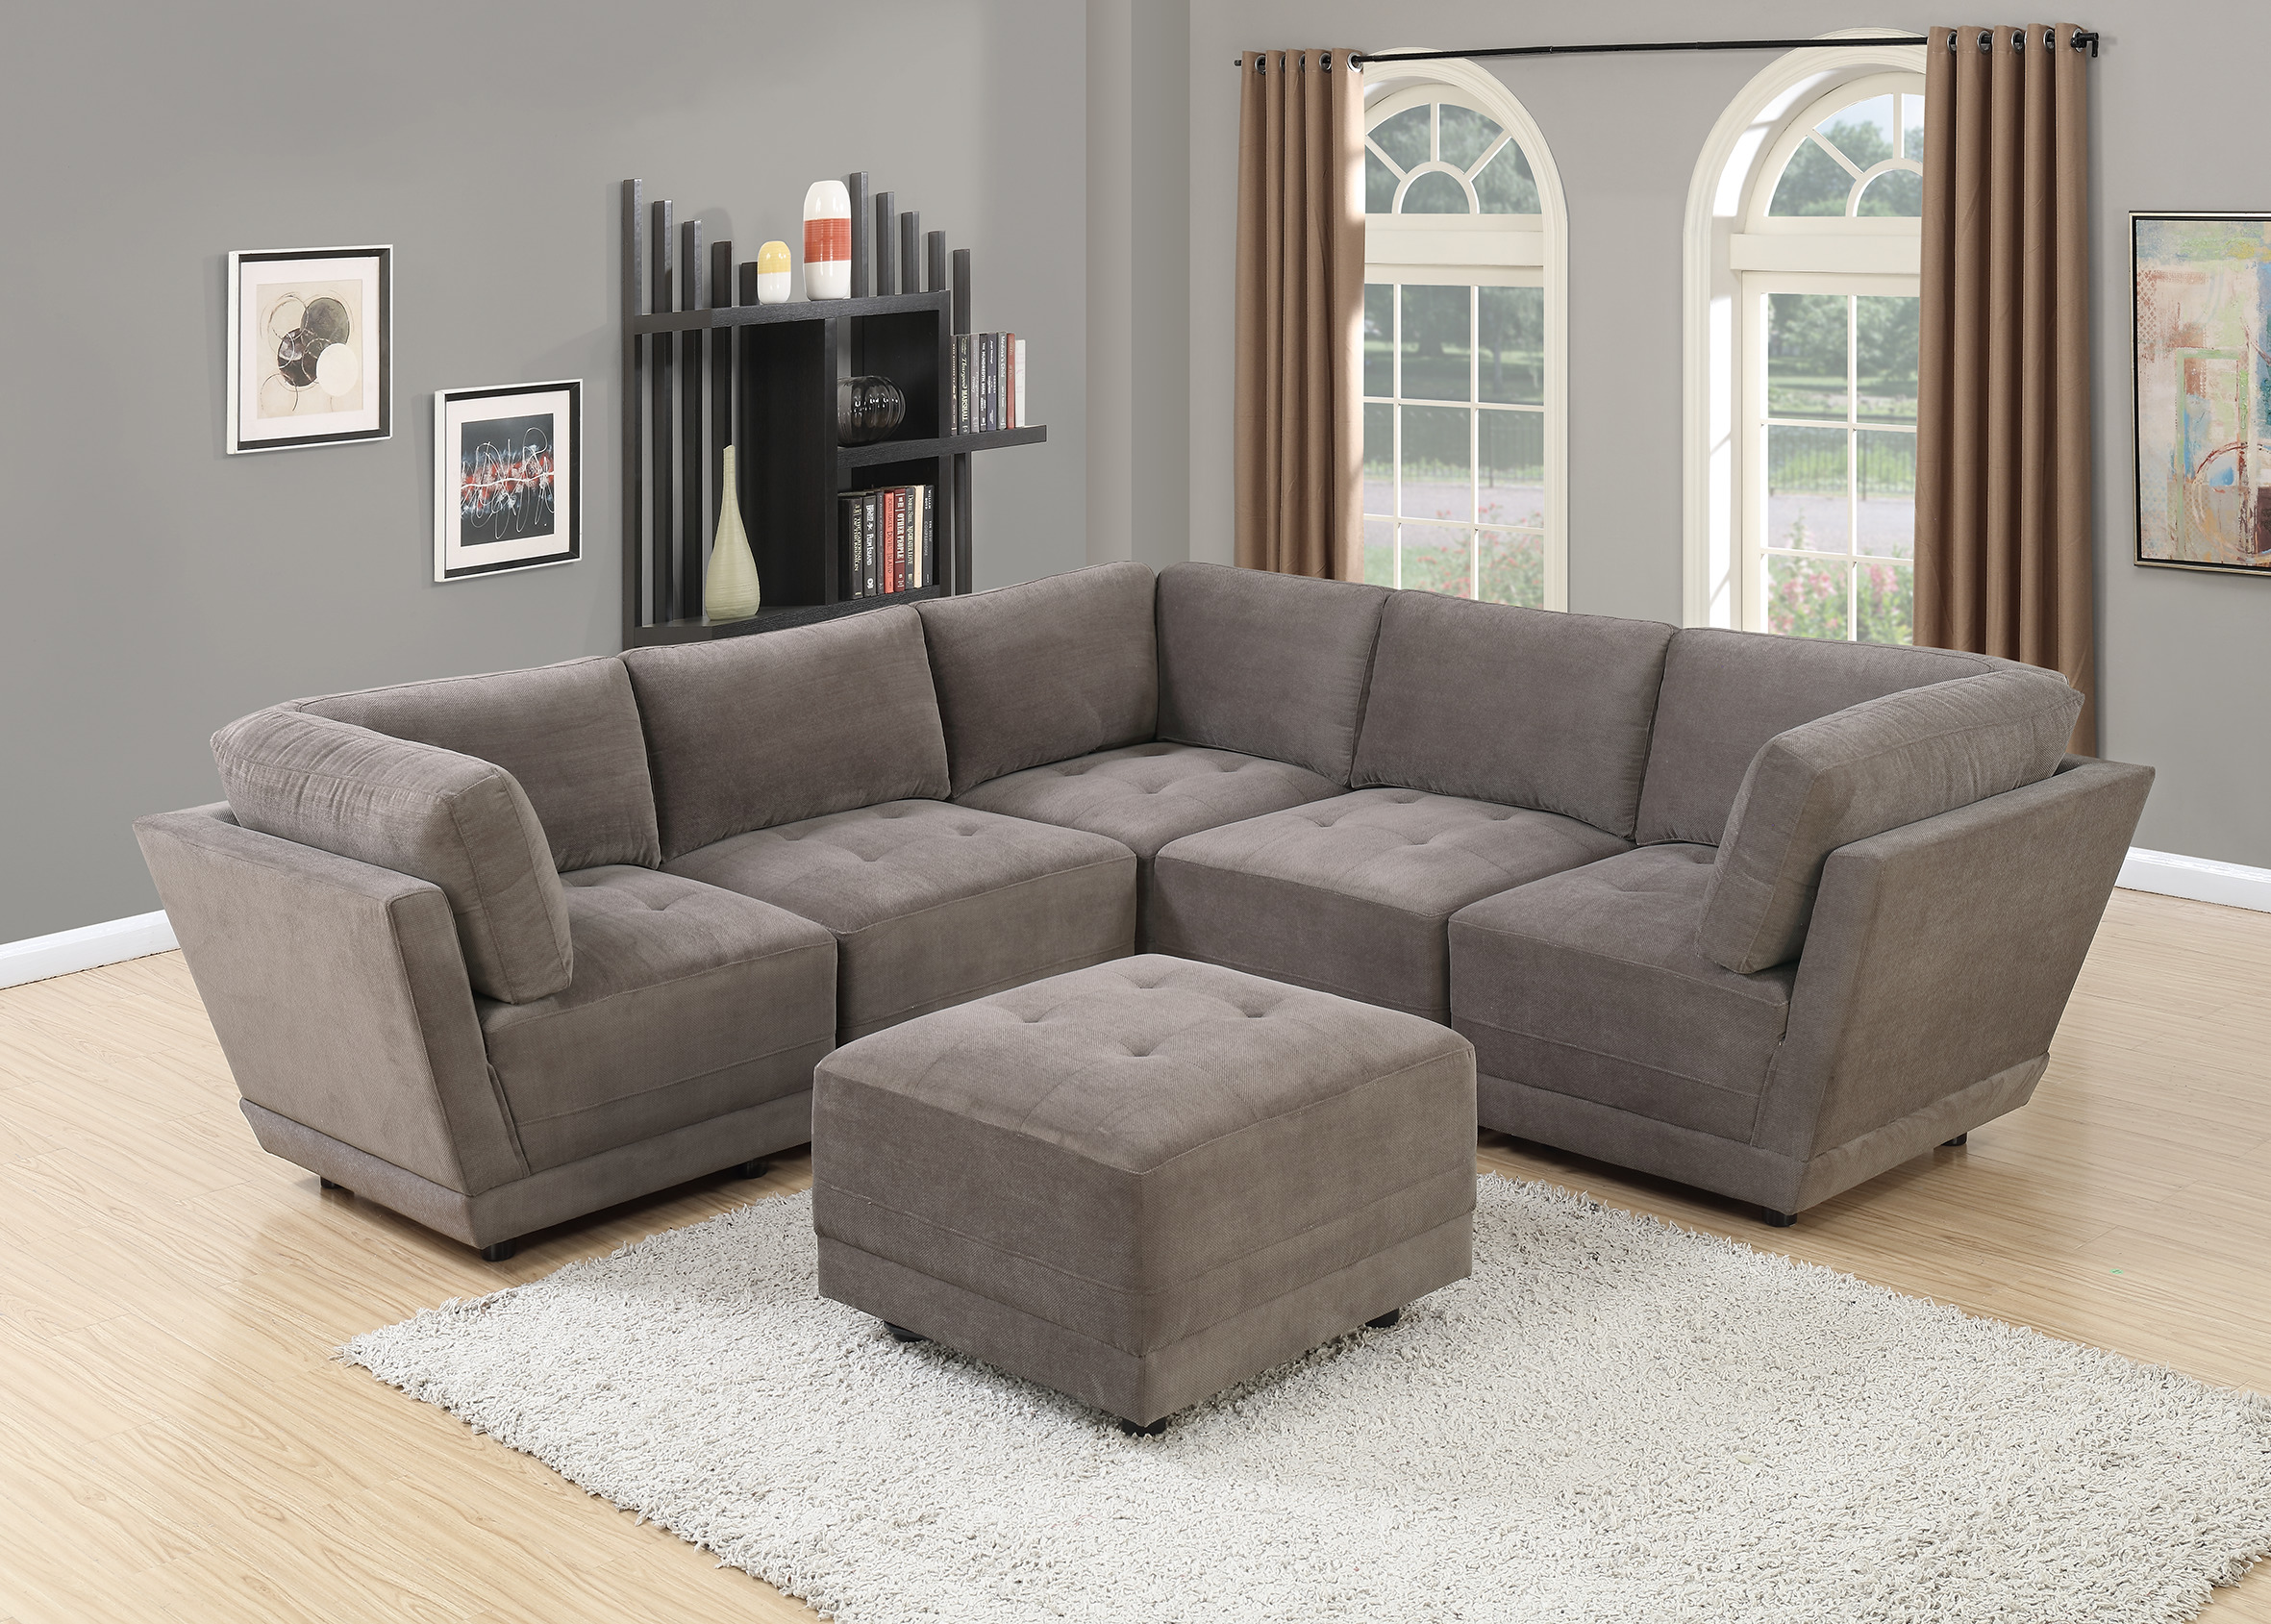 Living room furniture charcoal waffle suede fabric sectional sofa 6pc set tufted couch seat 3 corner wedge 2 armless chairs and ottoman walmart com